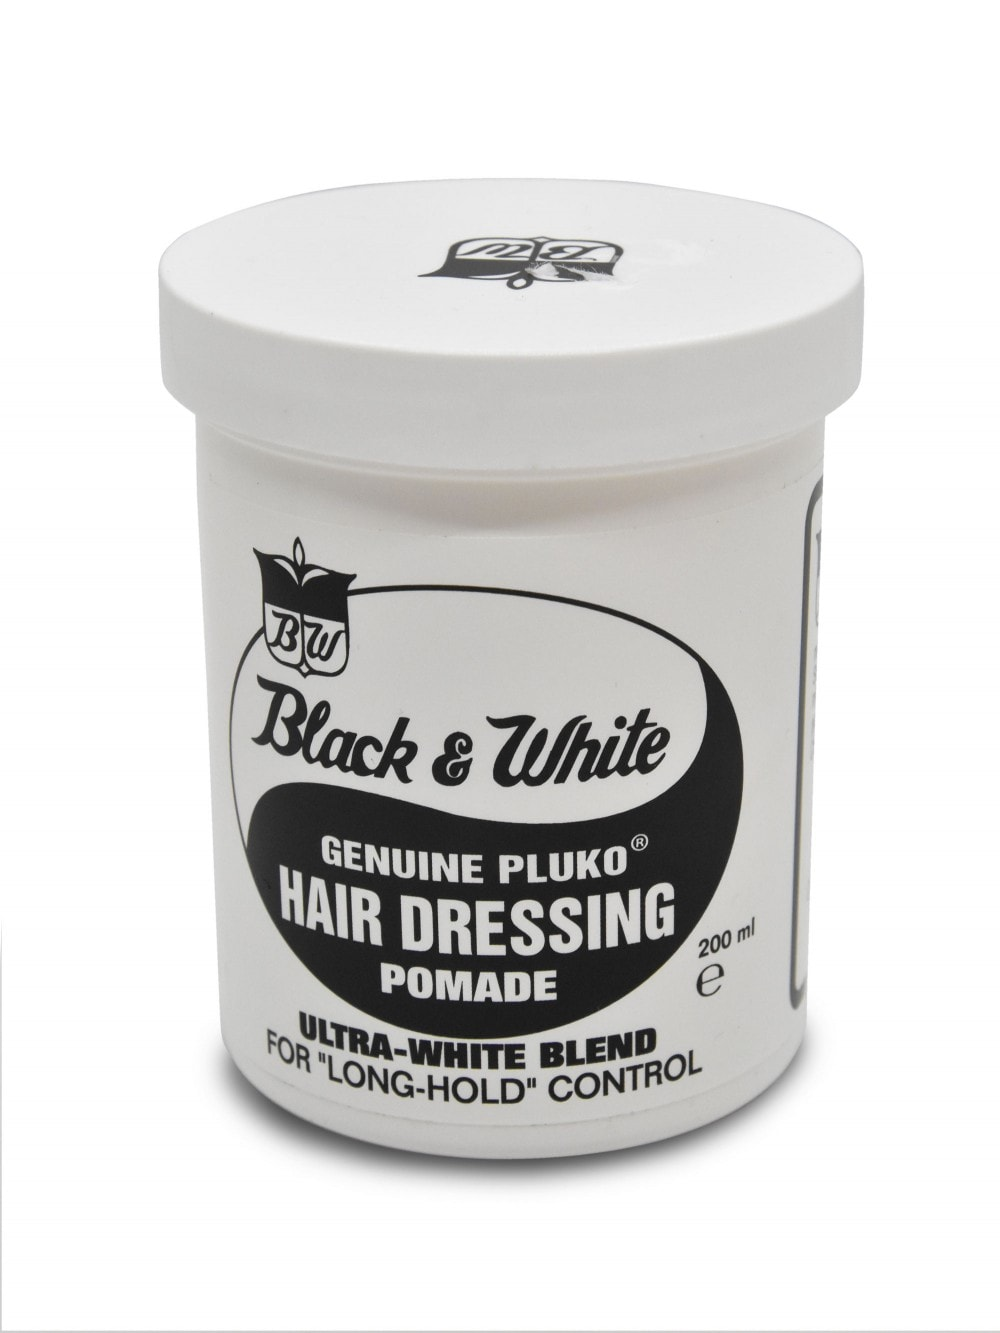 Black Amp White Hair Dressing Pomade From Vivien Of Holloway